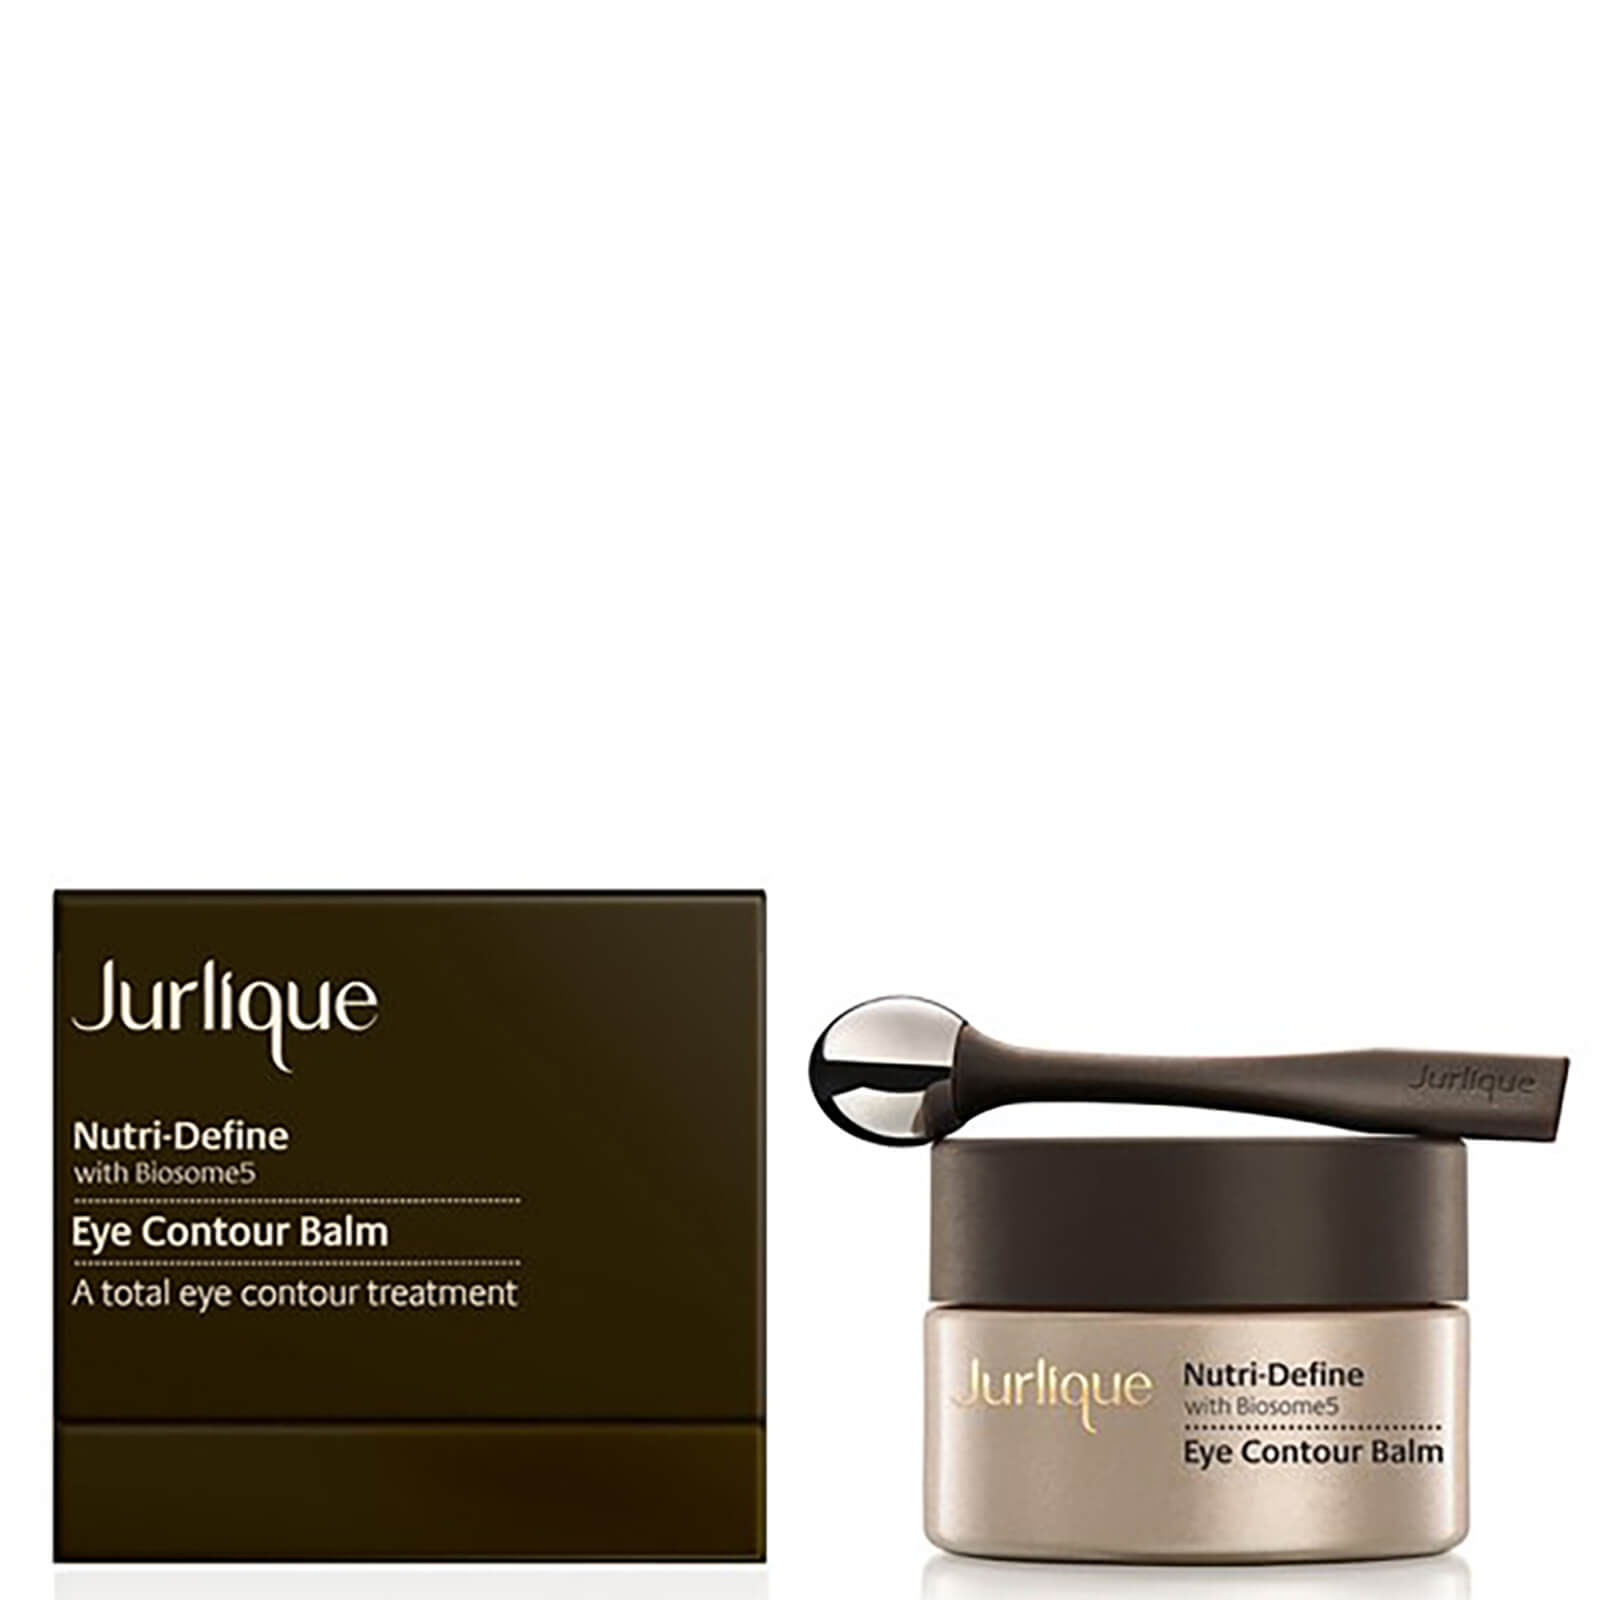 Jurlique Nutri-Define Eye Contour Balm (15ml)